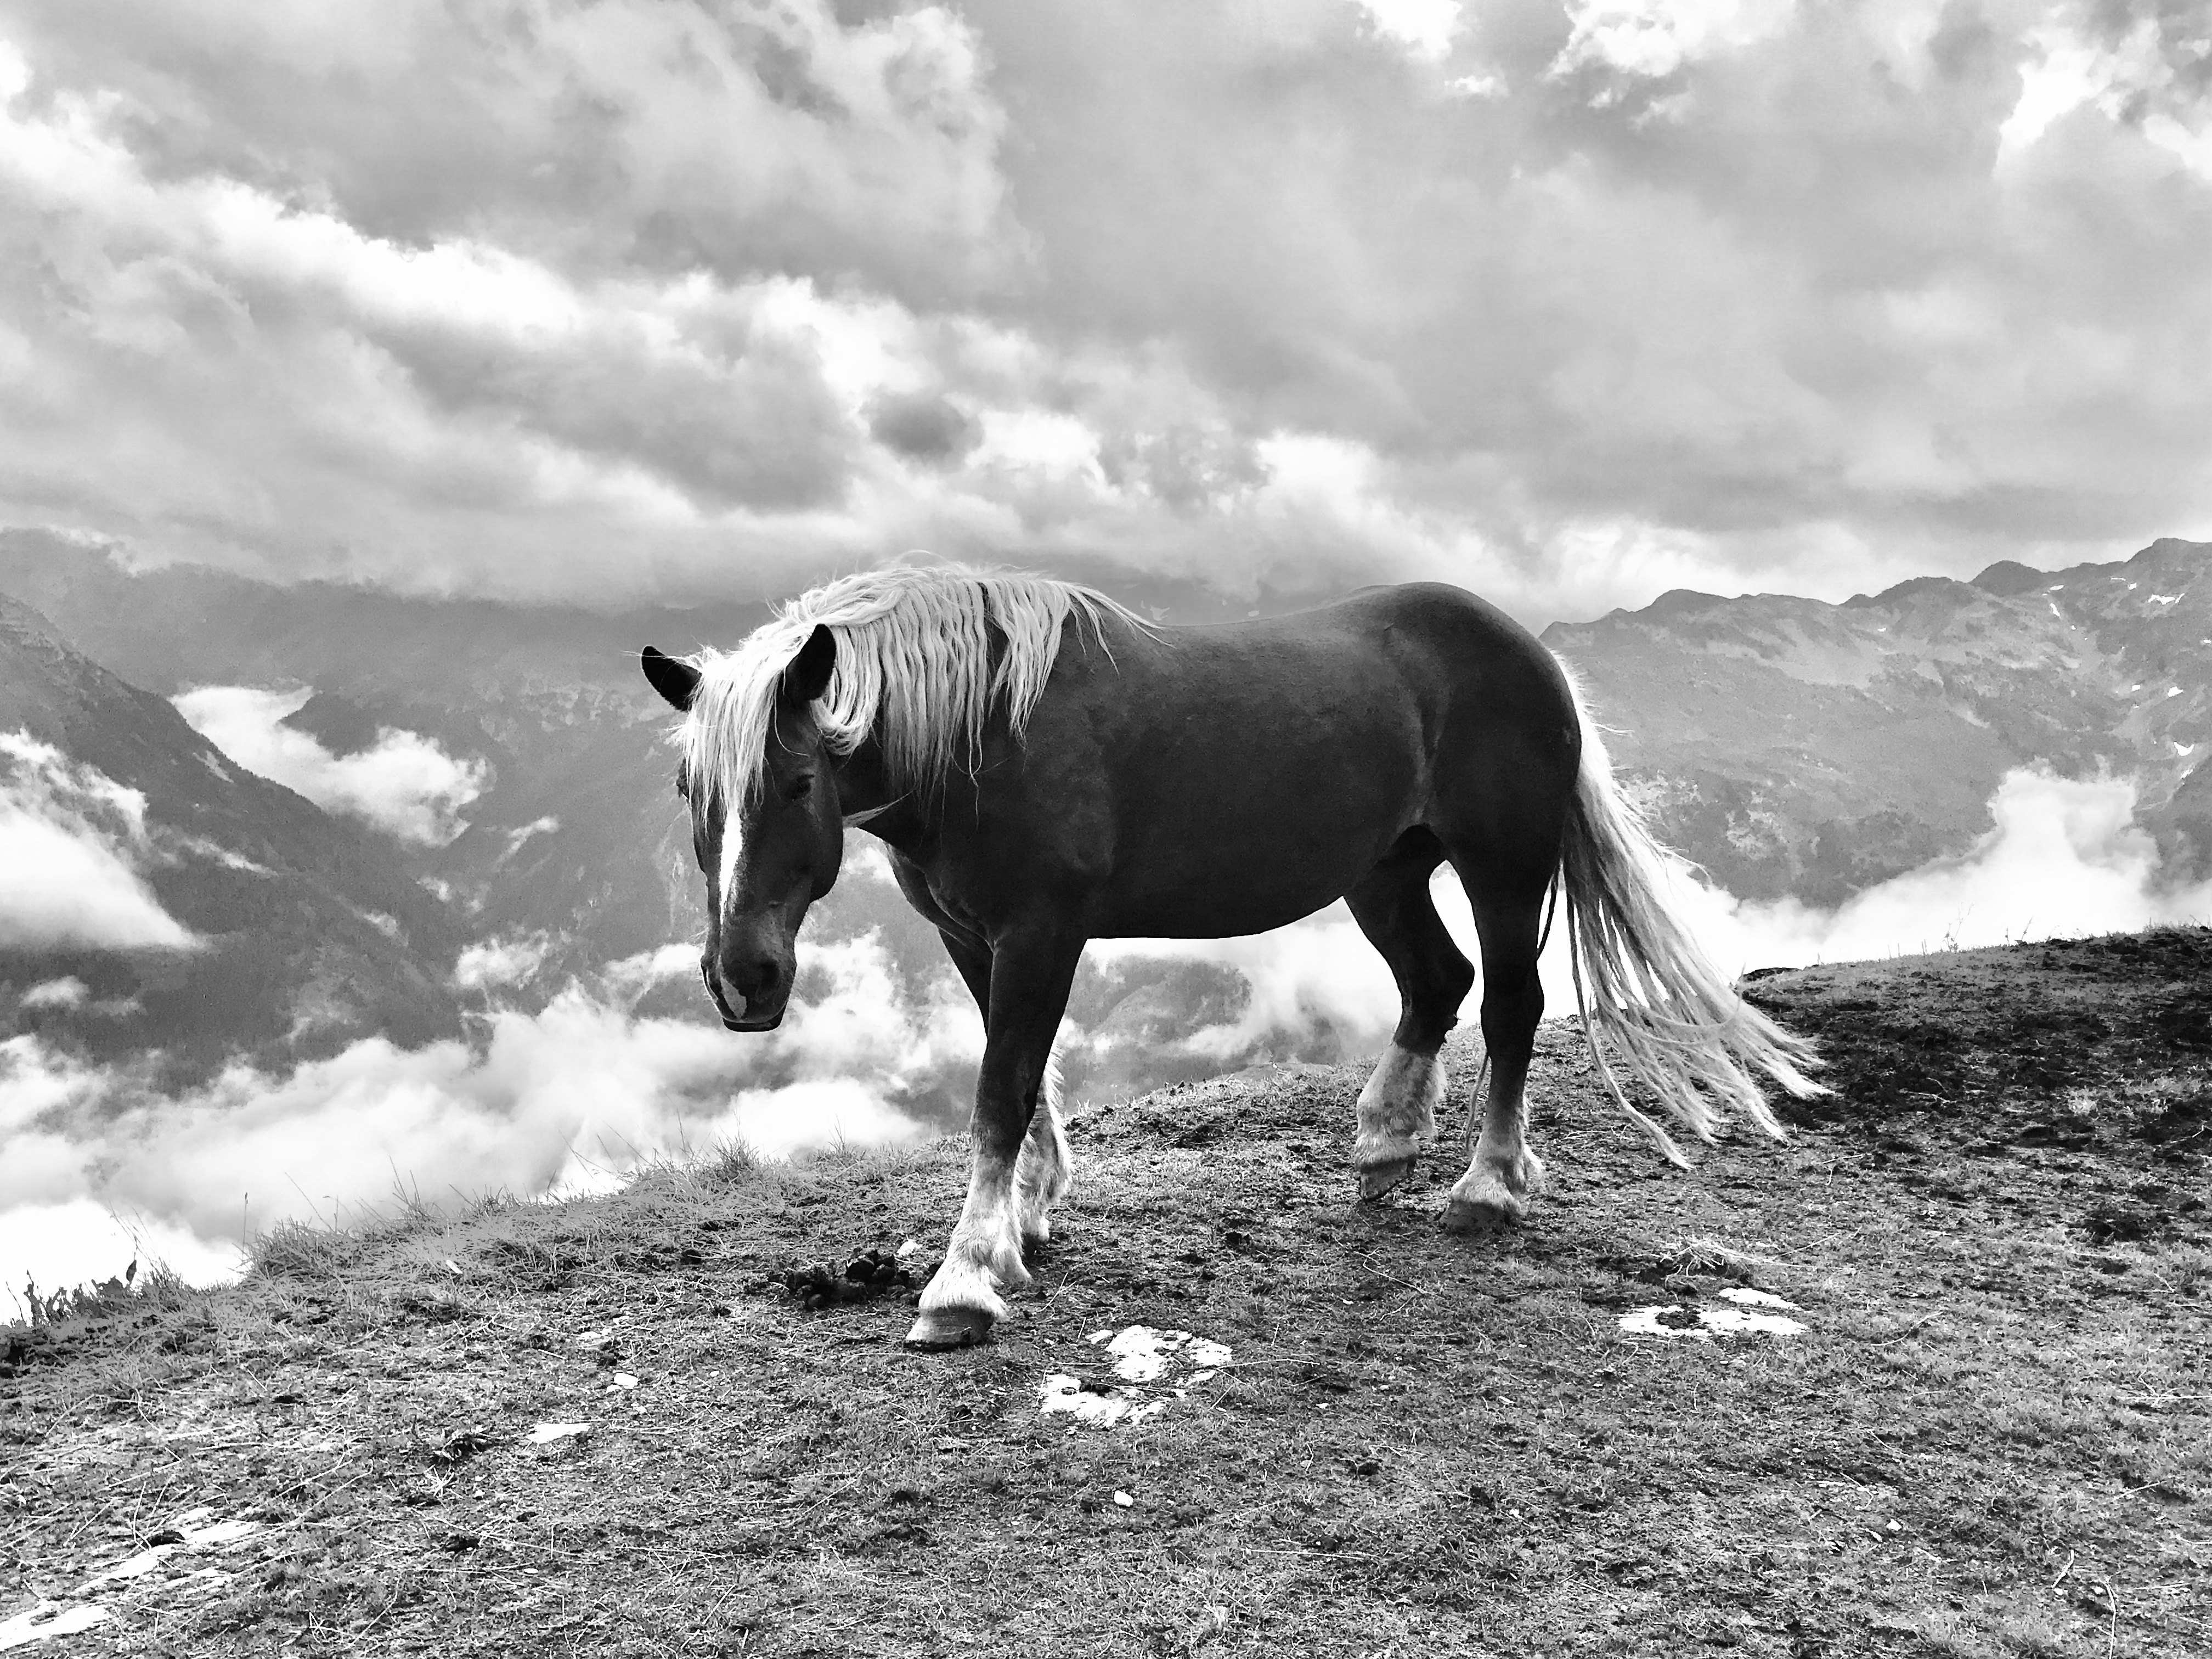 horse at the abyss - 2